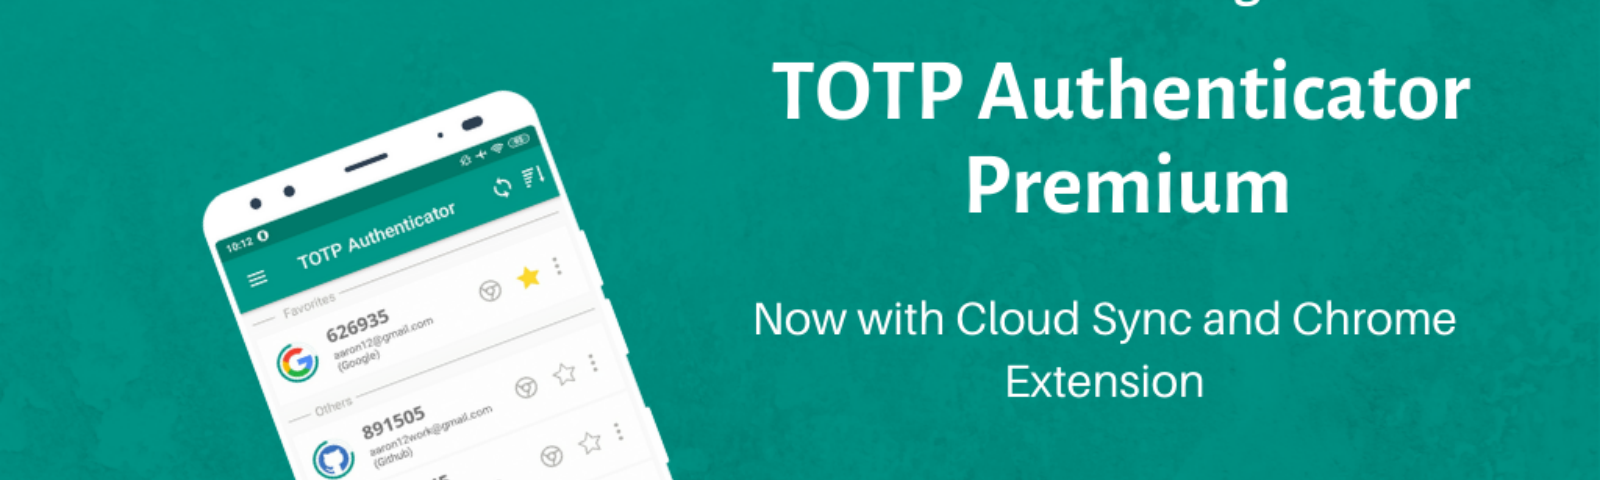 Introducing TOTP Premium with advance features like Cloud Sync and Chrome Extension